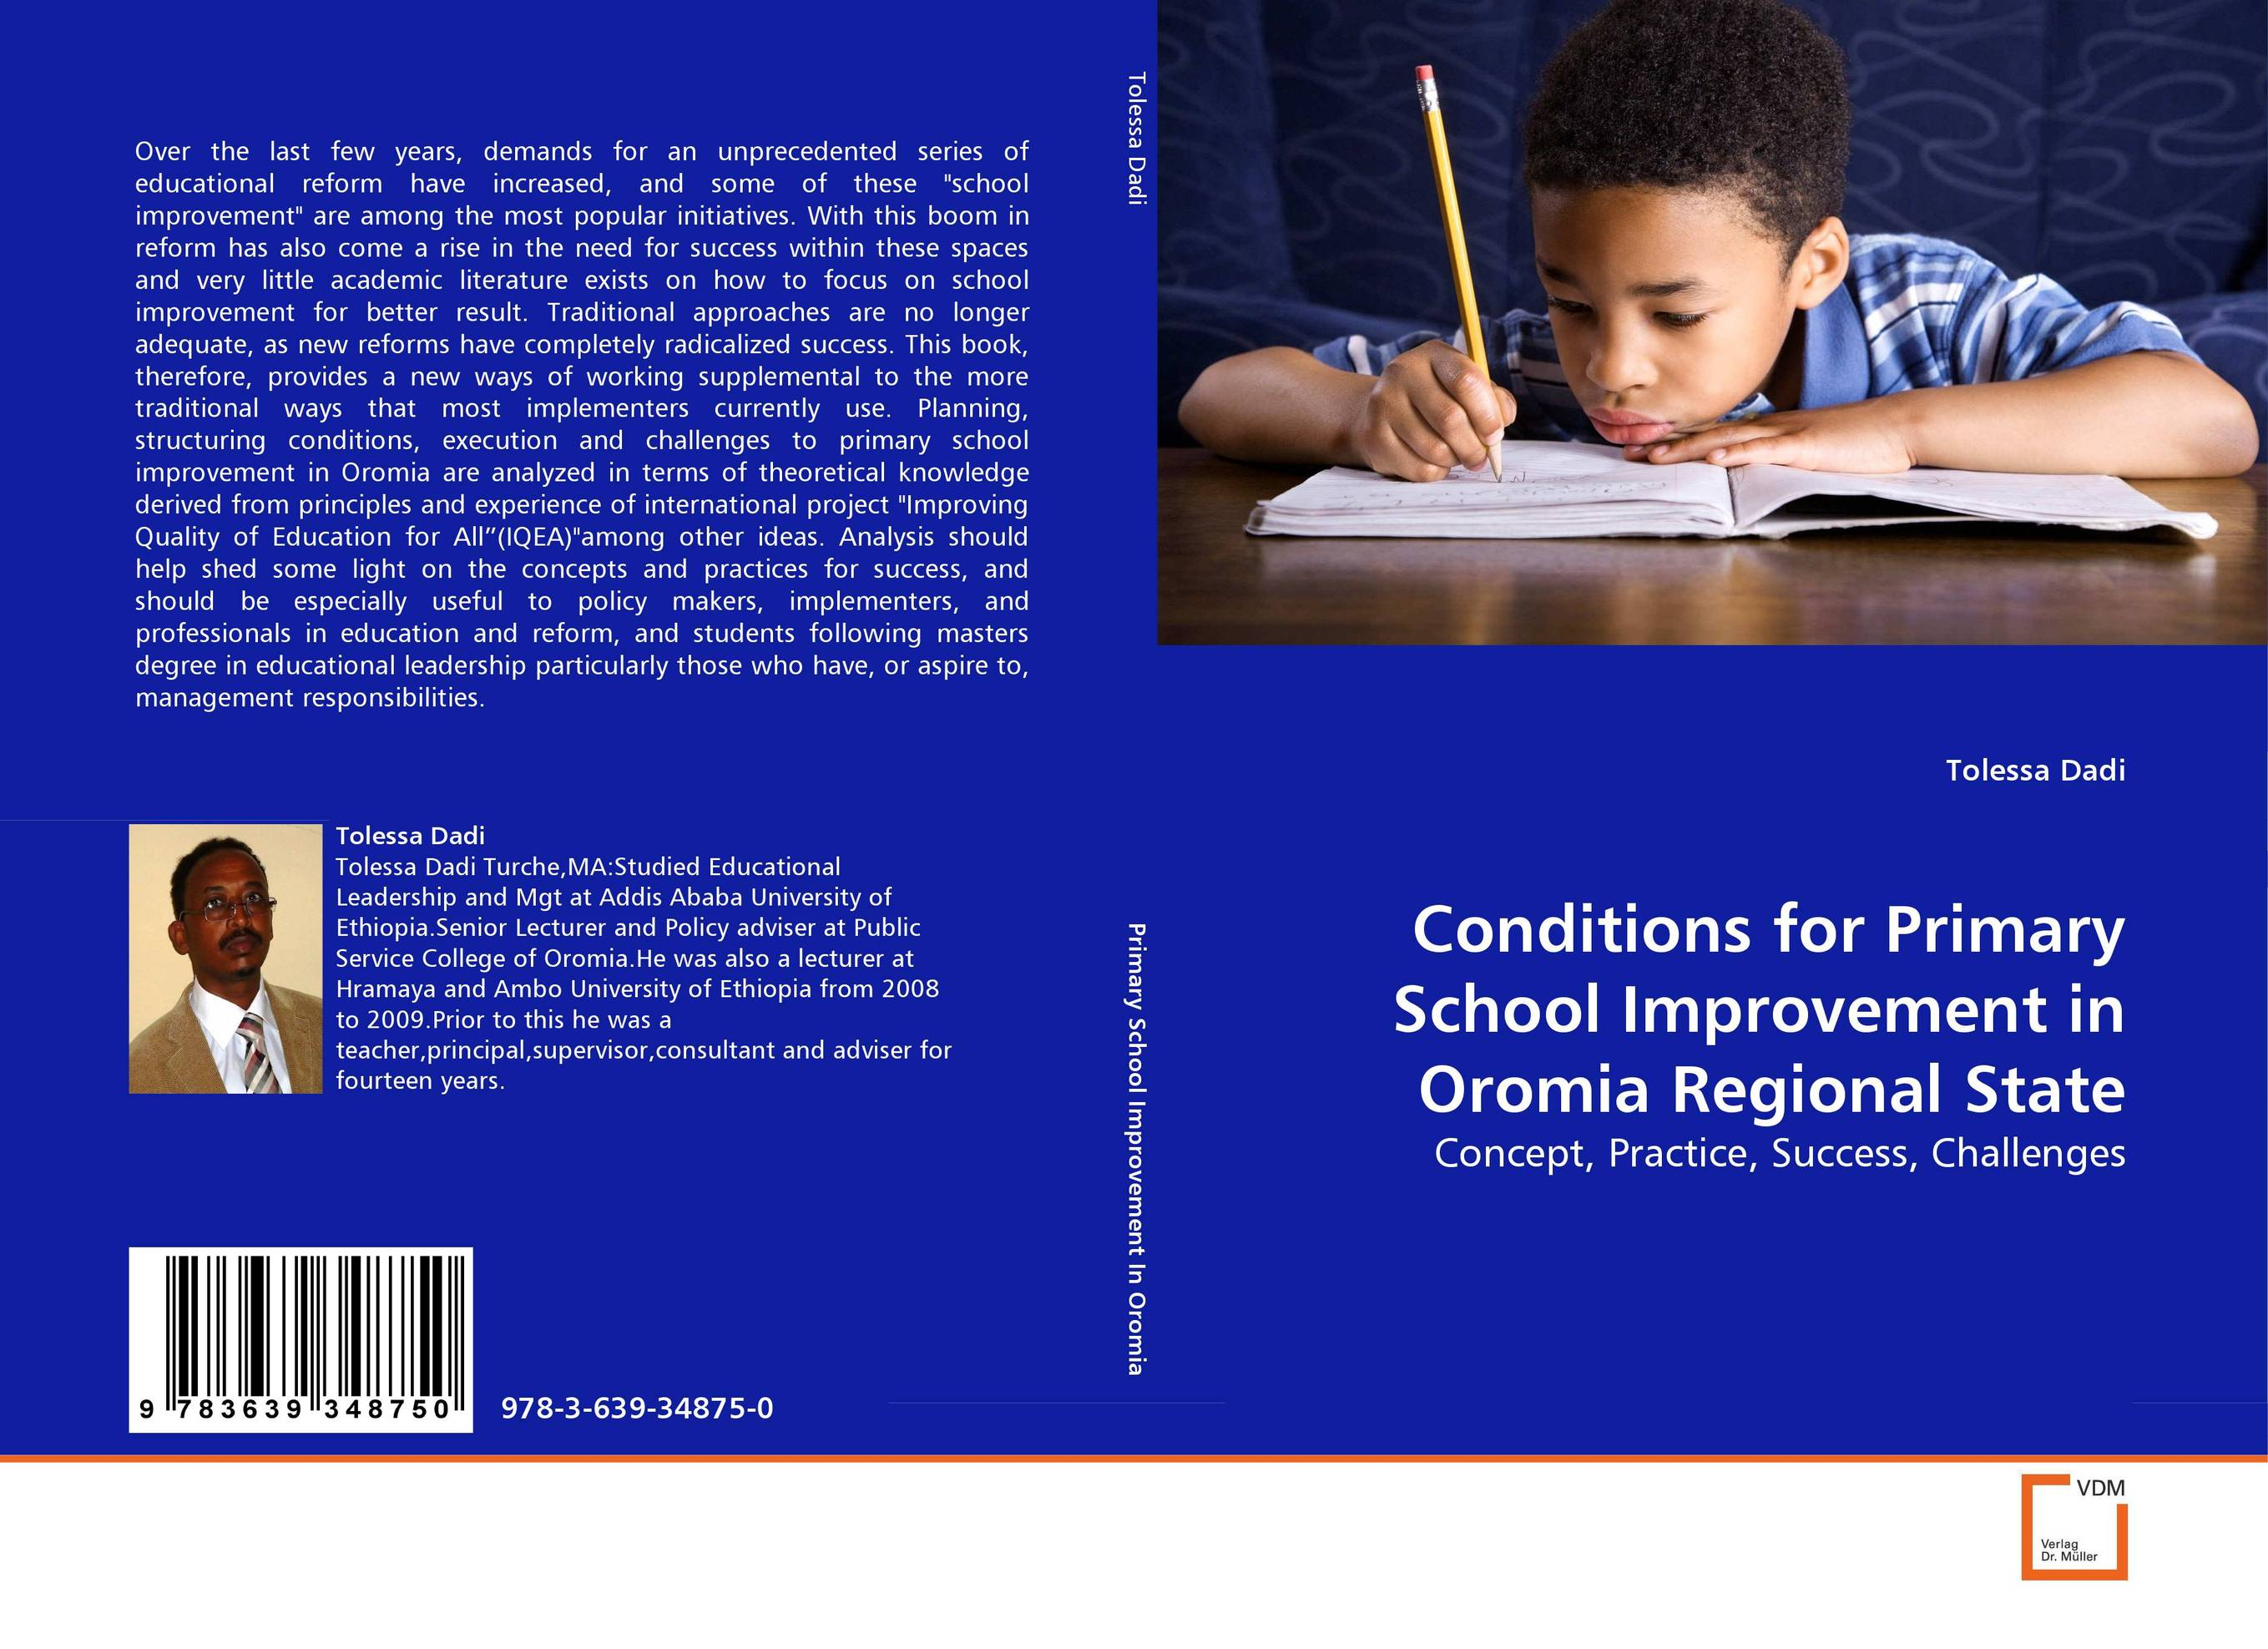 Conditions for Primary School Improvement in Oromia Regional State jane o connor nina nina and the copycat ballerina level 2 progressing reader